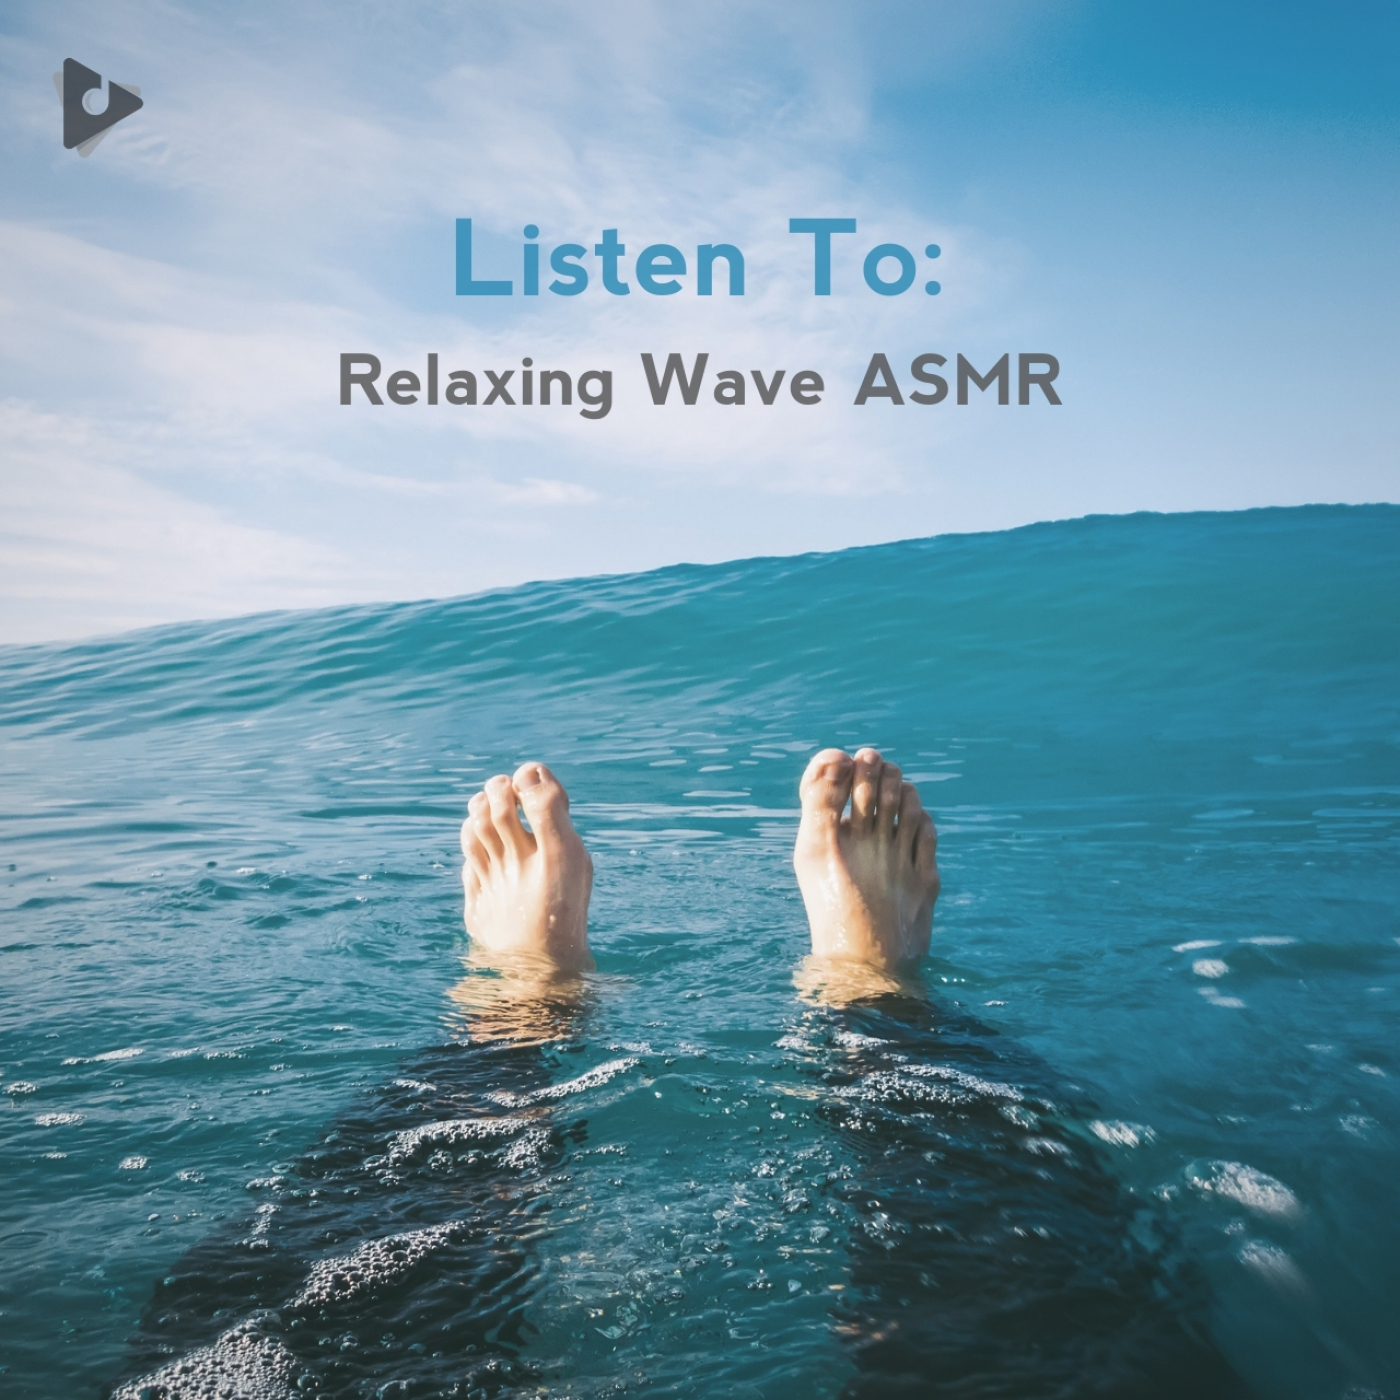 Listen To: Relaxing Wave ASMR